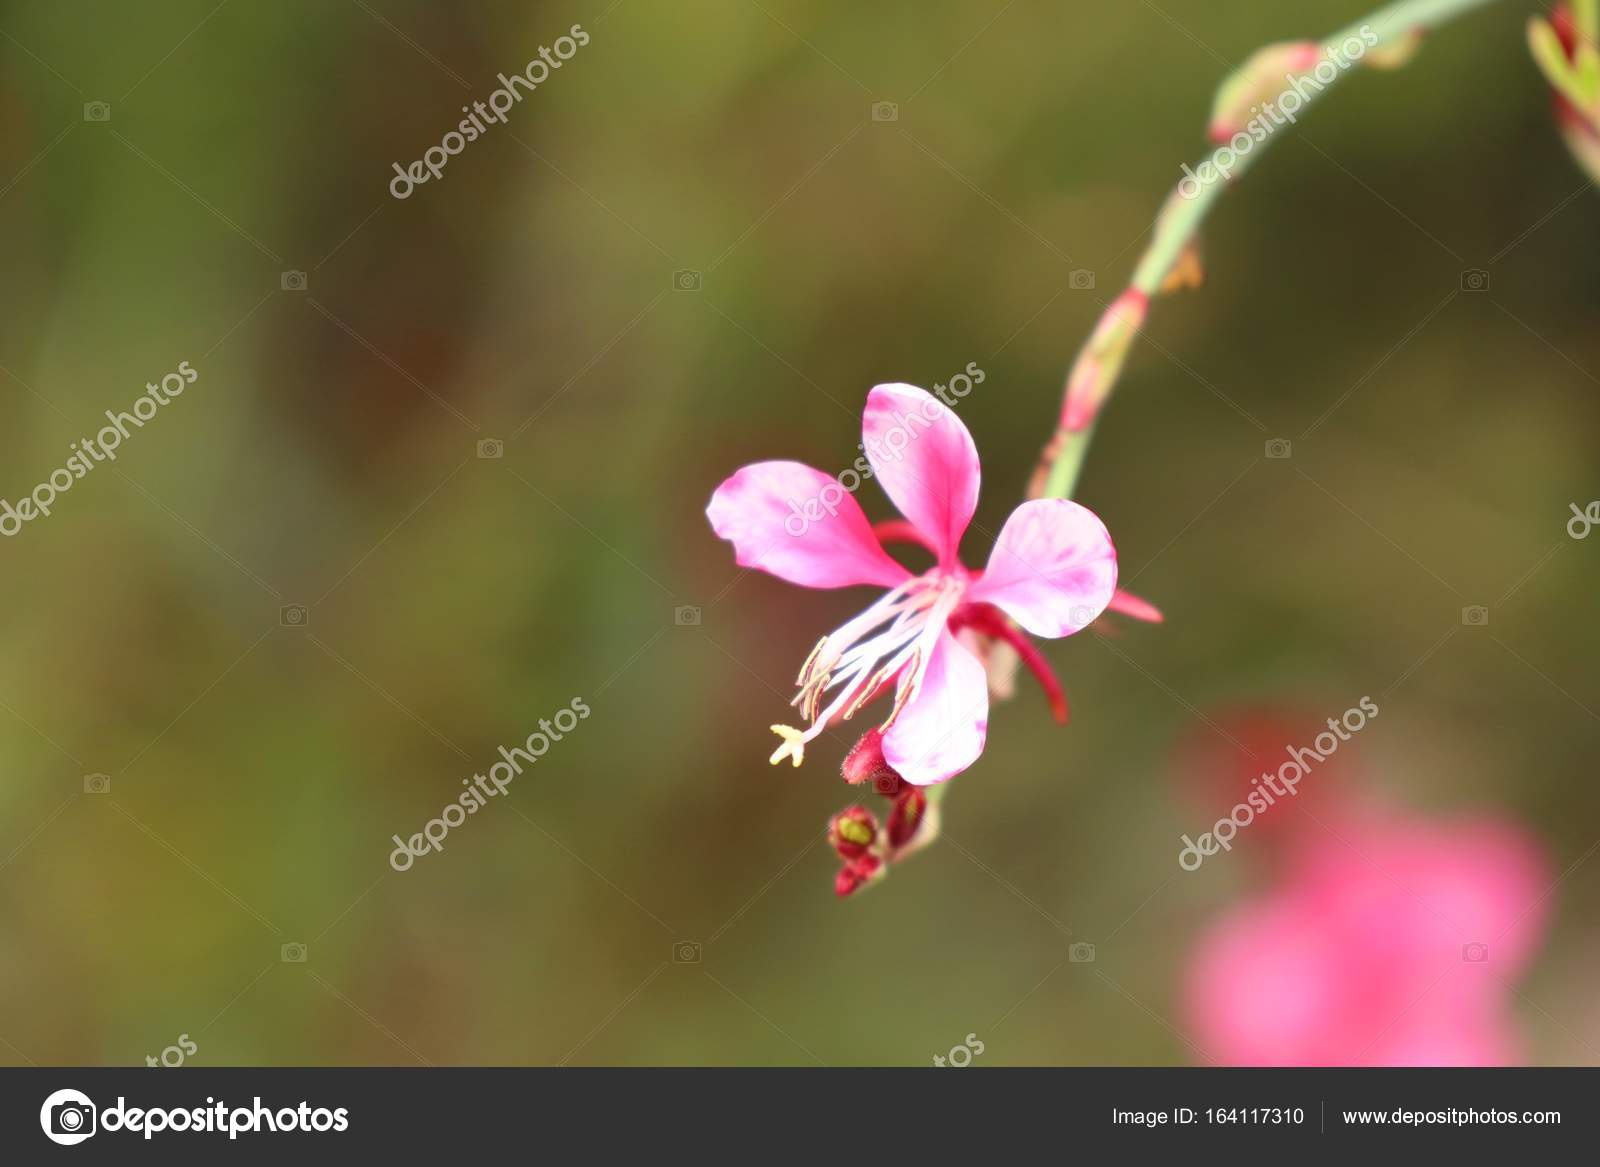 Pink flowers in nature stock photo oilslo 164117310 pink flowers in nature stock photo mightylinksfo